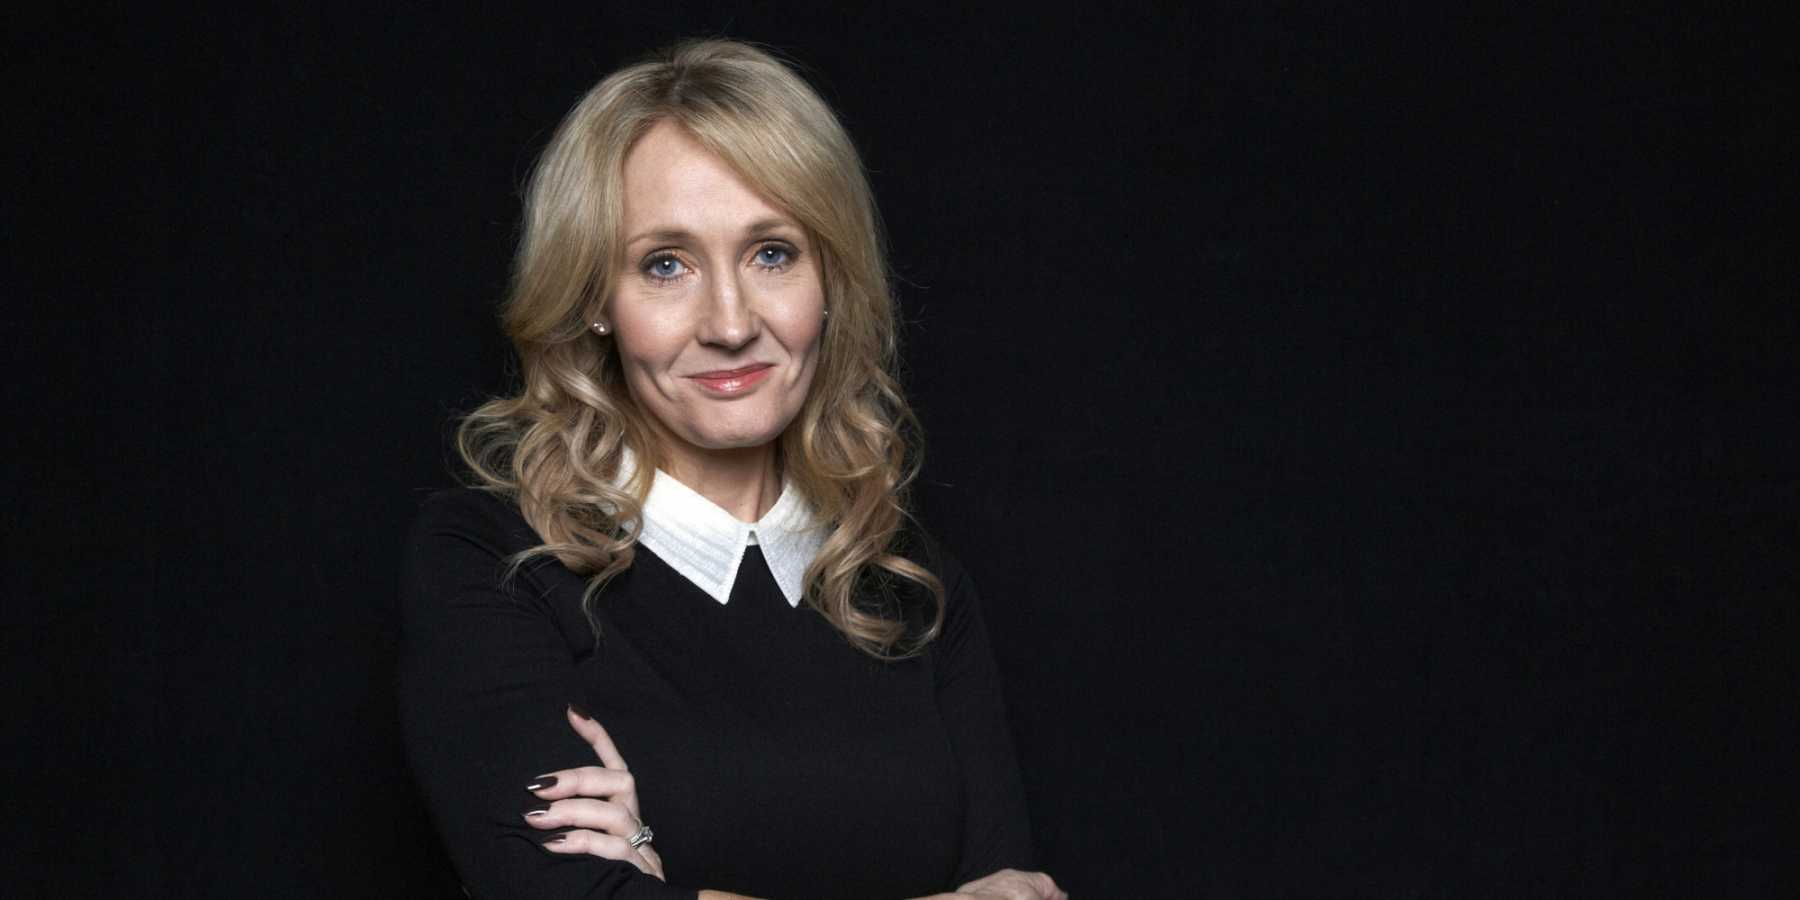 J.K. Rowling Slams Donald Trump With Very British Reference | Rowling